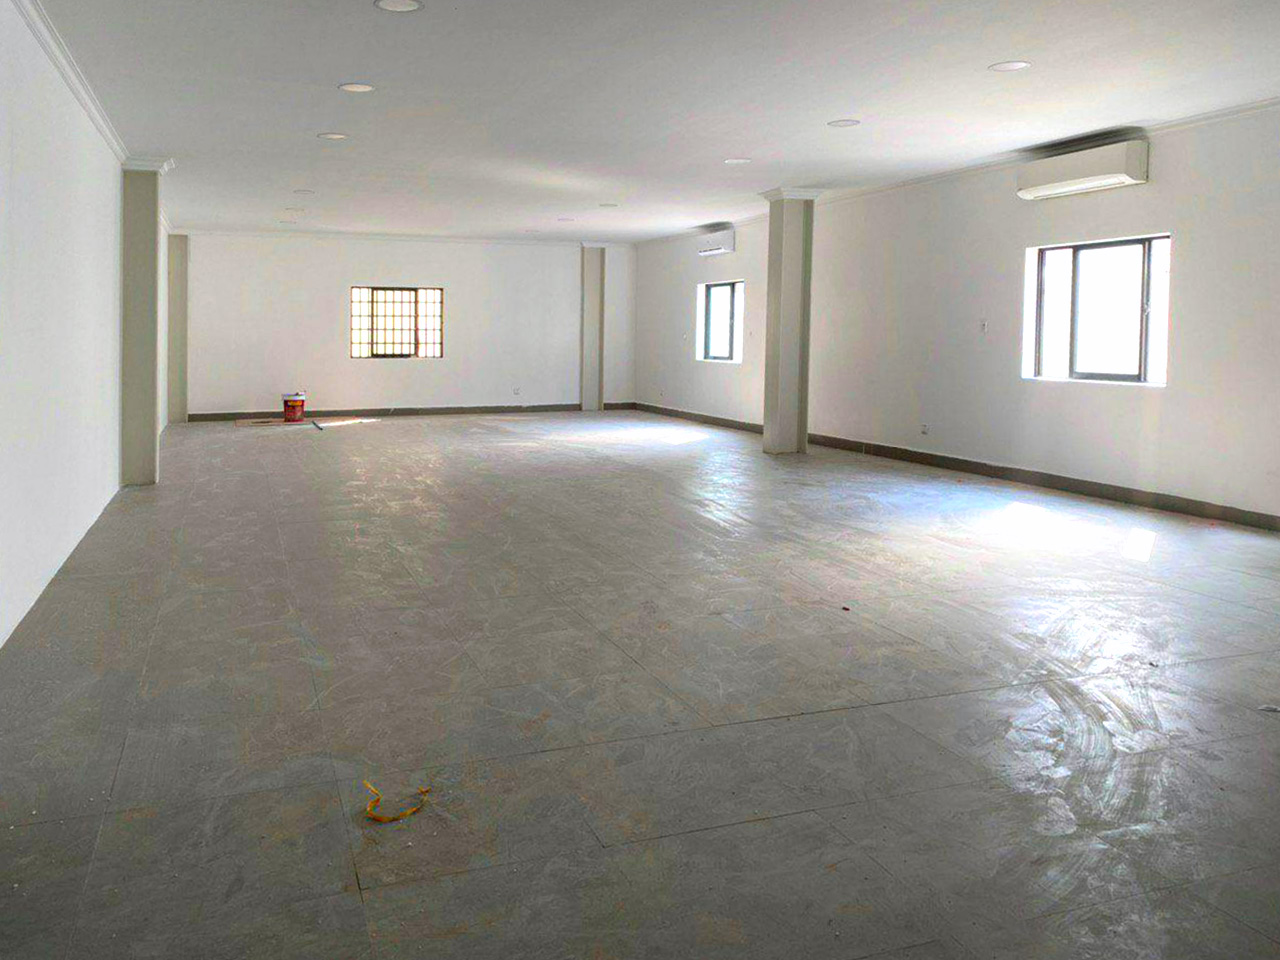 130 Square meters office space for rent in BKK 1 area